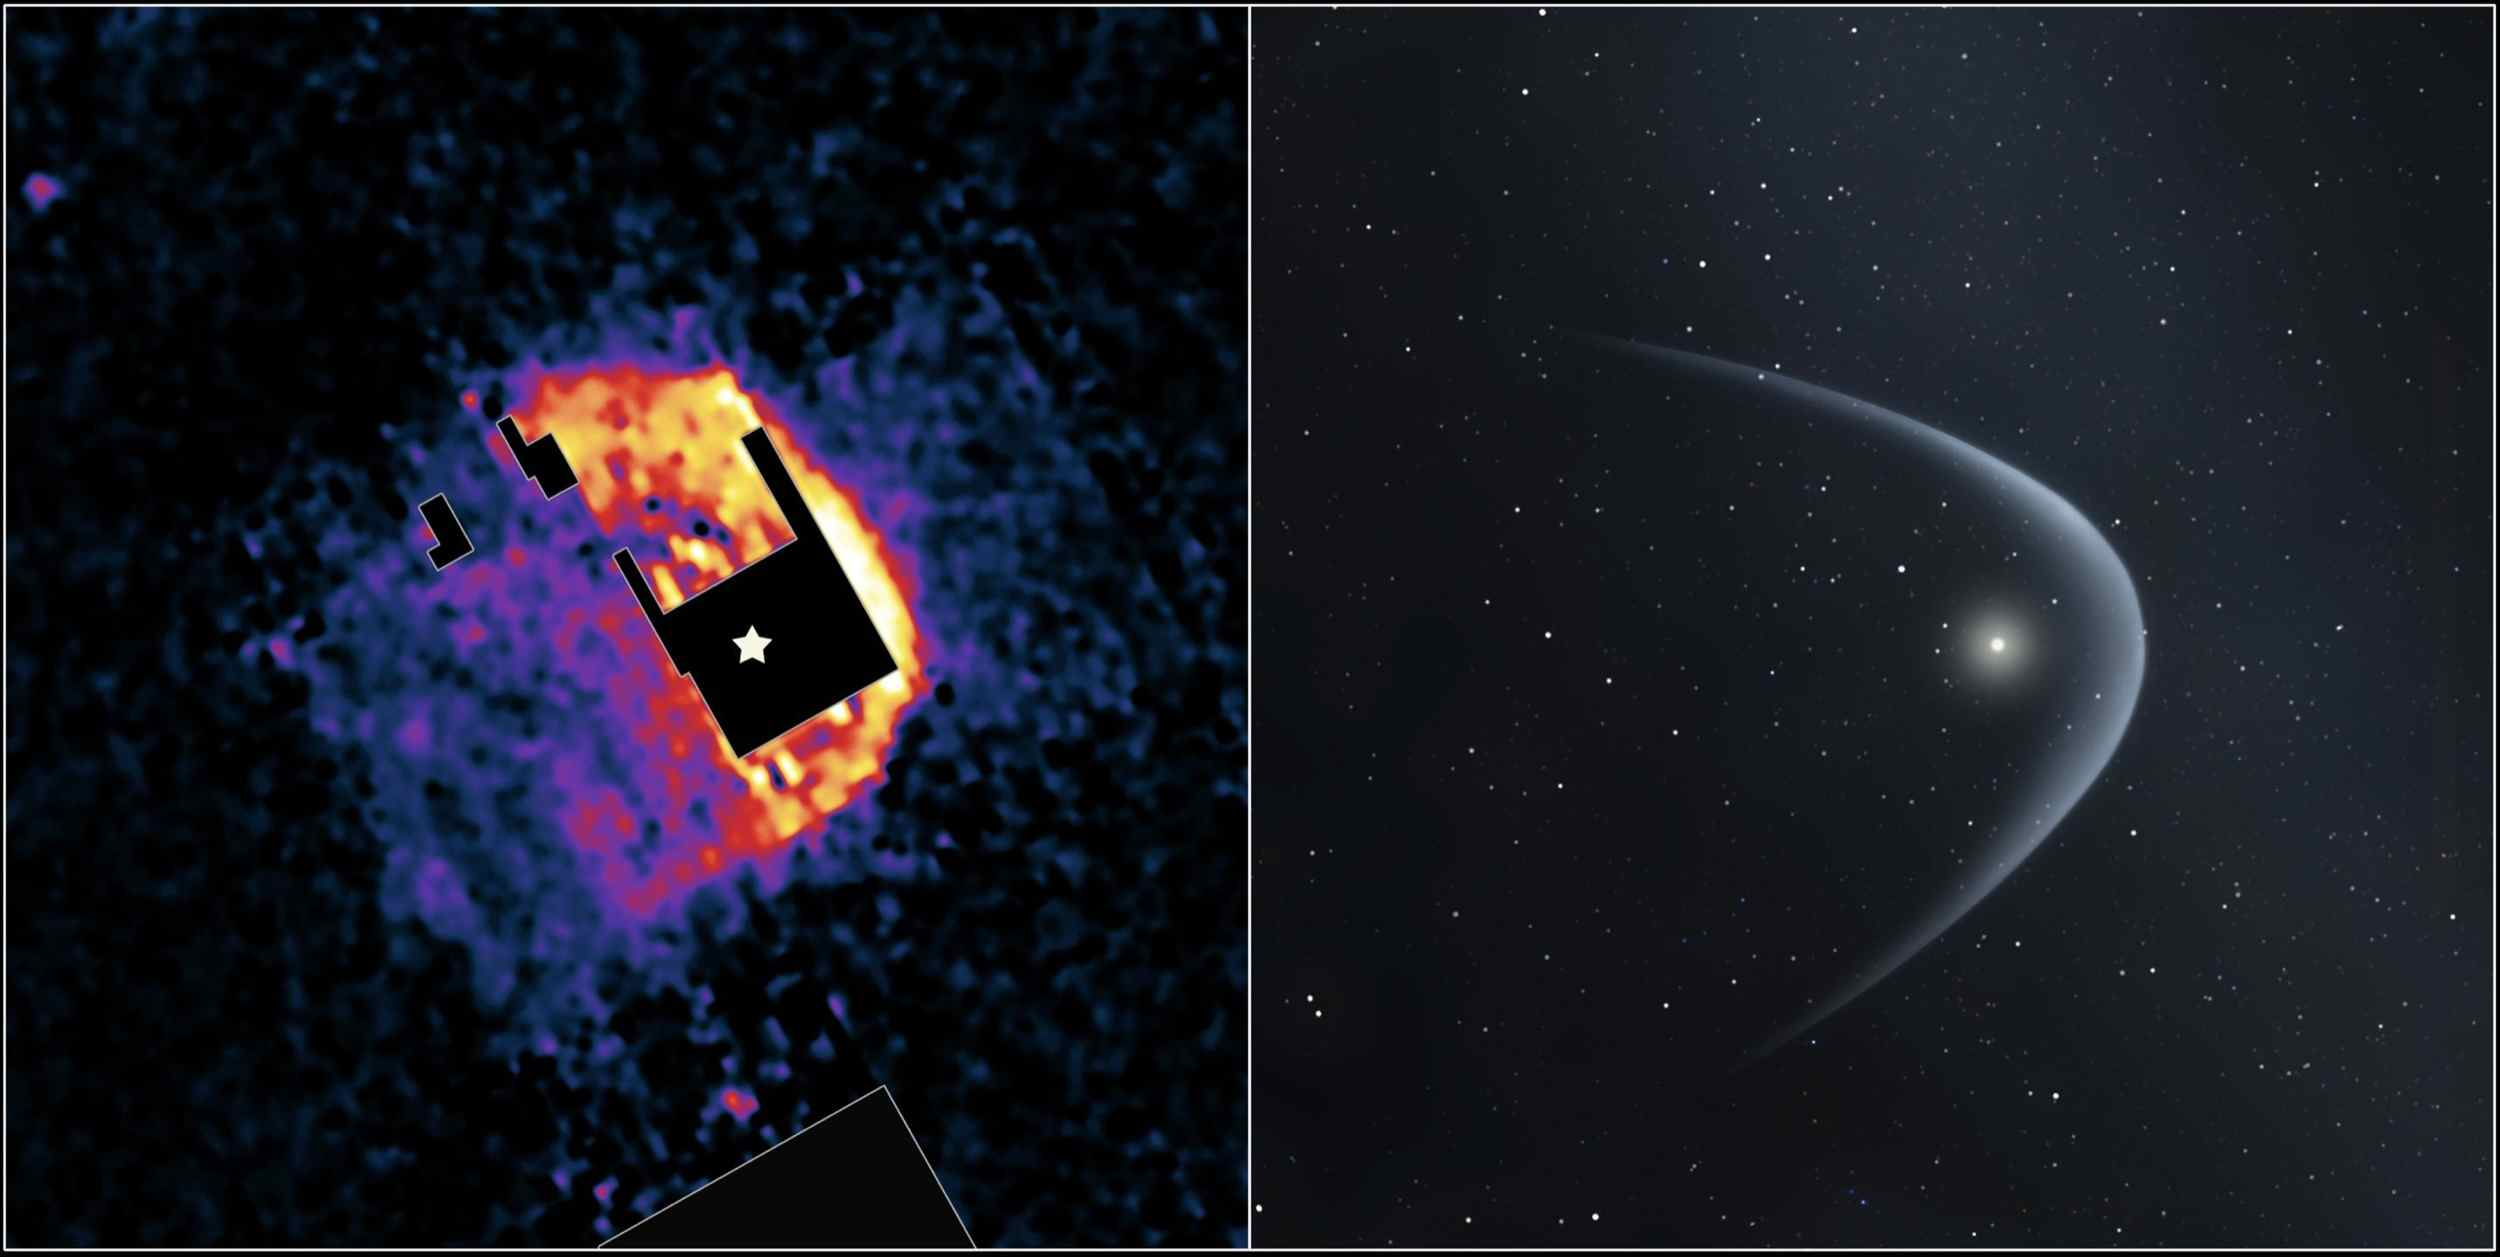 This image from NASA's Spitzer Space Telescope (left panel) shows the 'bow shock' of a dying star named R Hydrae, or R Hya, in the constellation Hydra.